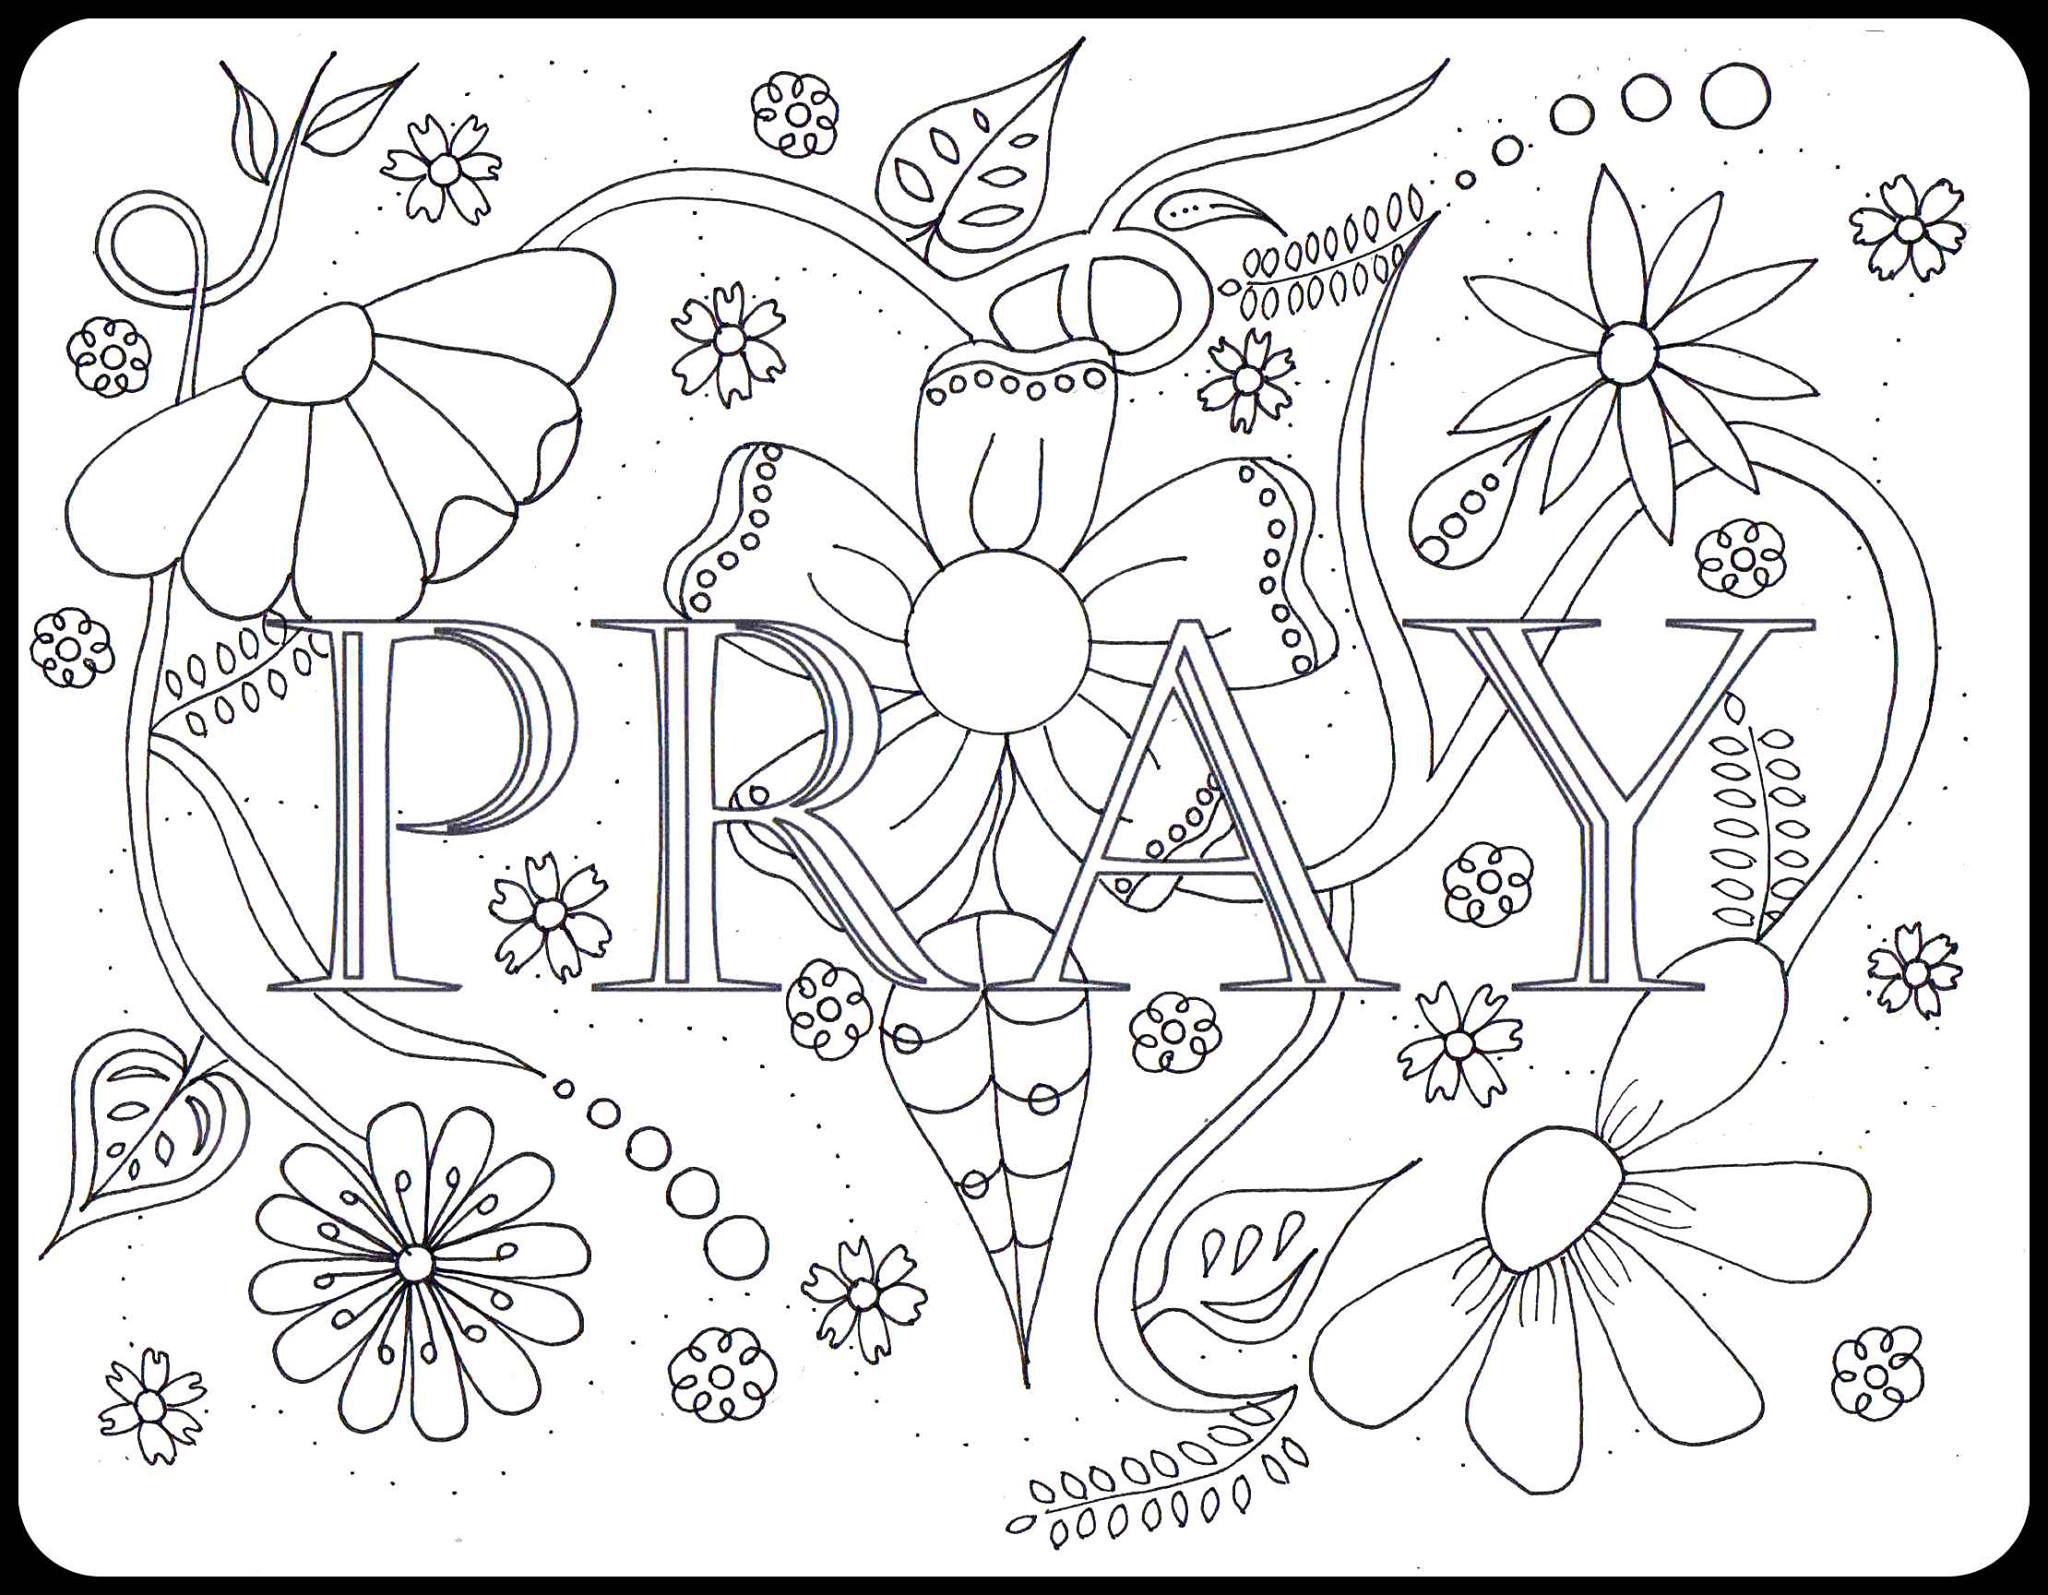 Lds Coloring Pages Lds Coloring Pages With Best 20 Lds Ideas On Pinterest  Coloring .